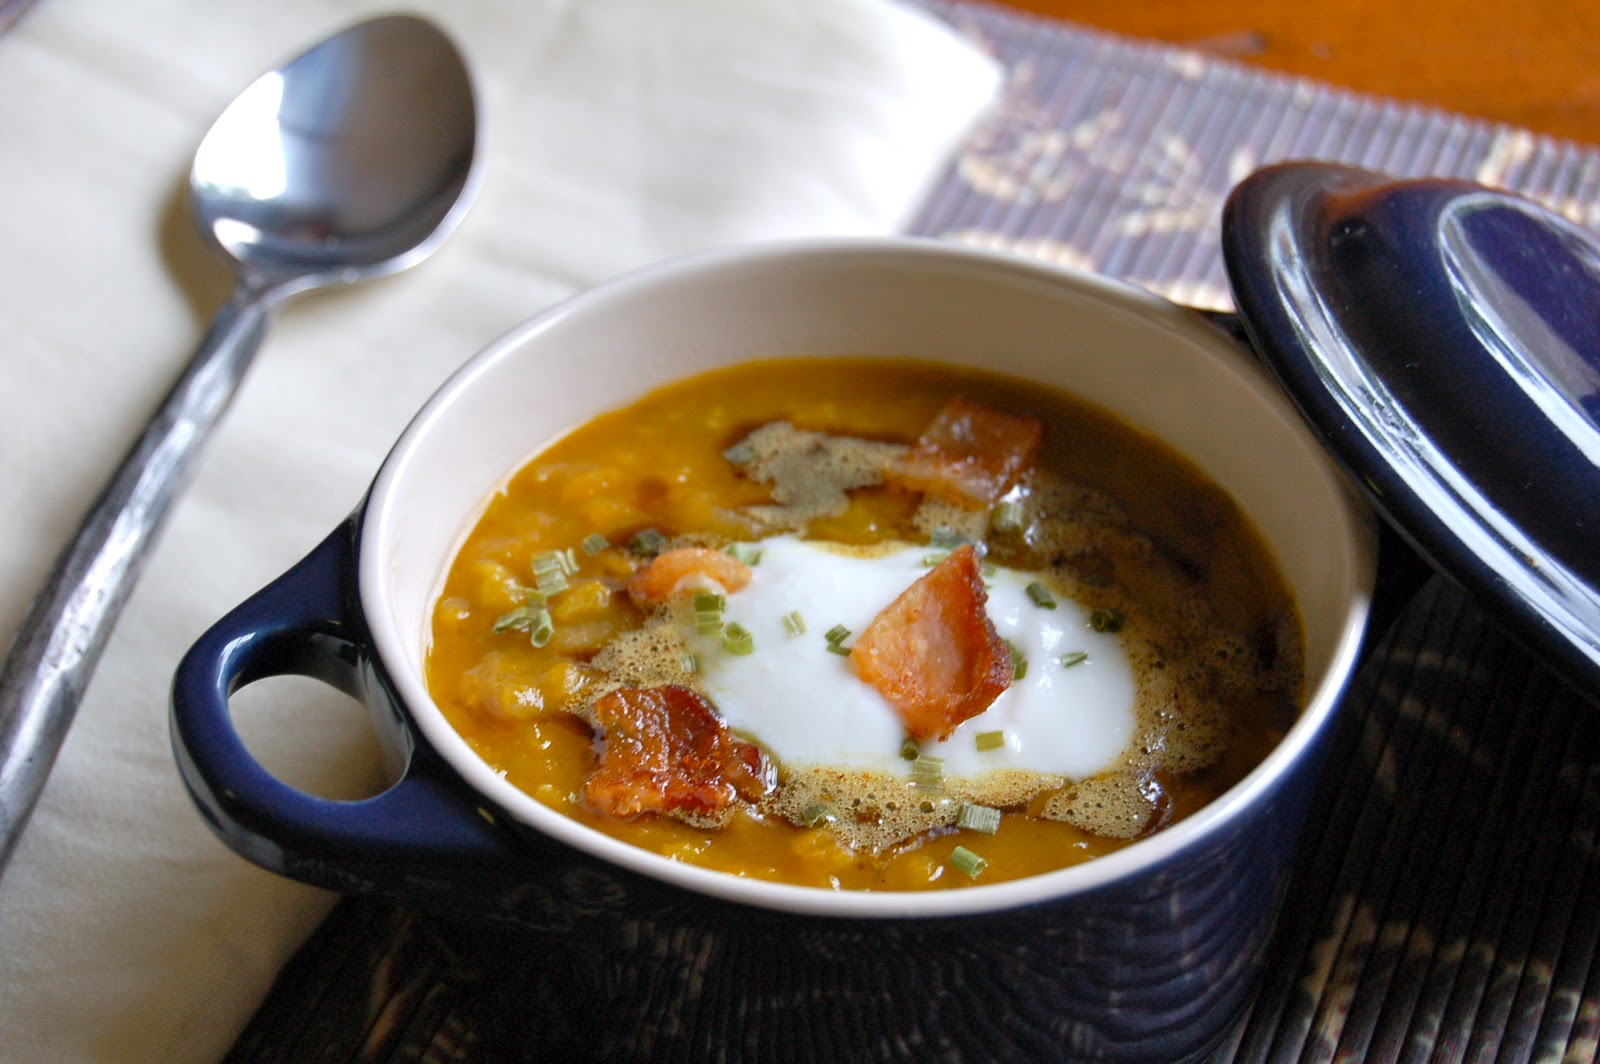 Green Lentil Soup With Curried Brown Butter Recipes — Dishmaps